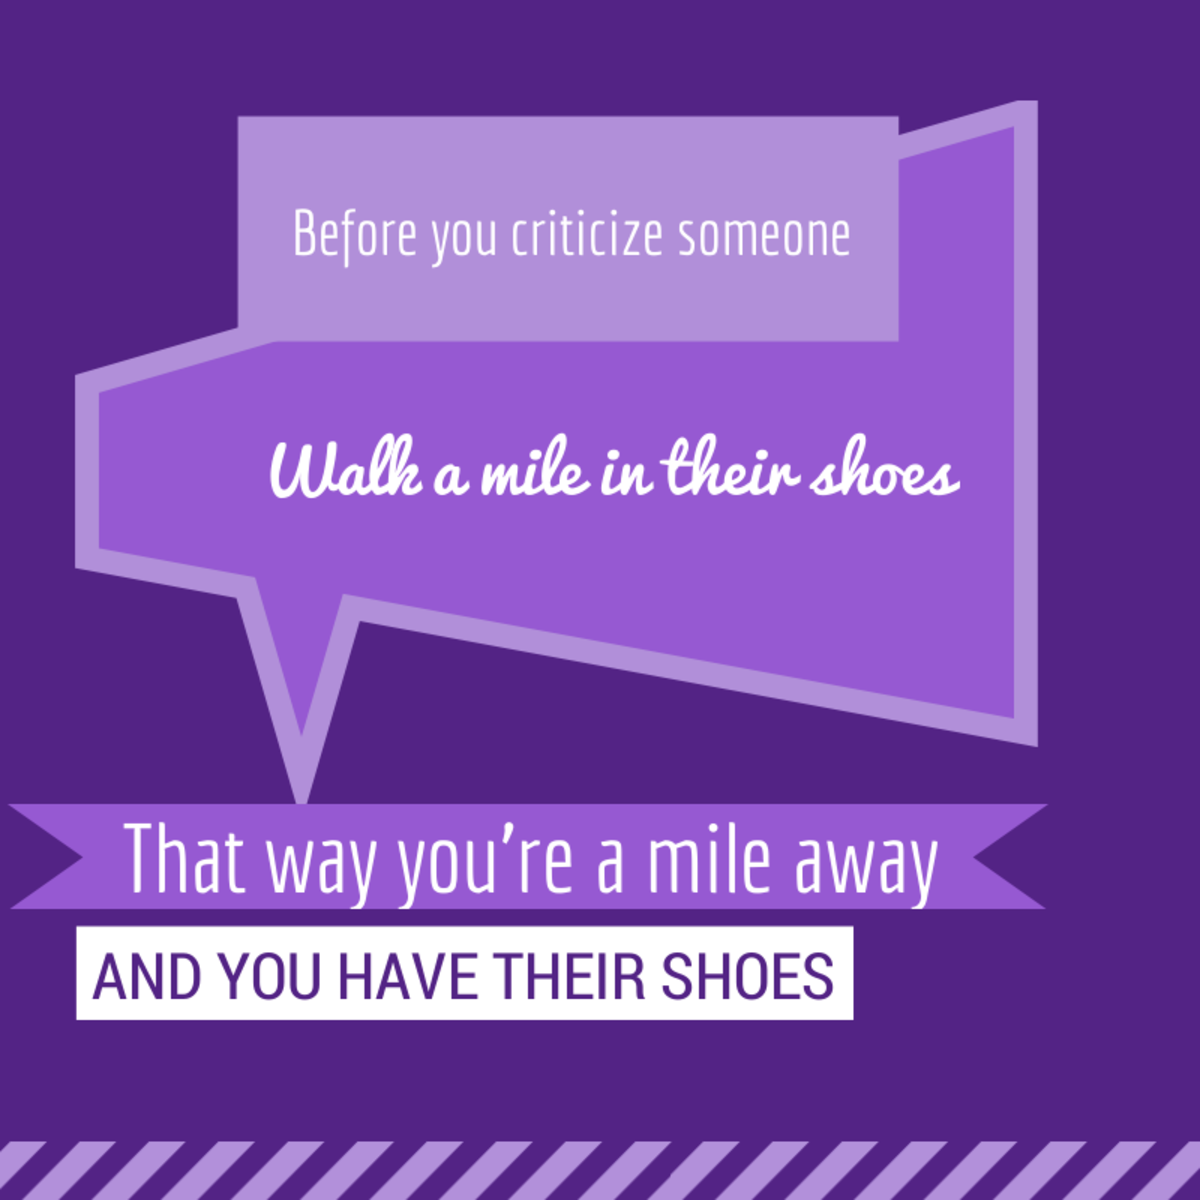 Adding a signature line to an email is a great way to add a bit of your personality and a touch of humor to your message: Before you criticize someone, walk a mile in their shoes. That way you're a mile away and you have their shoes.